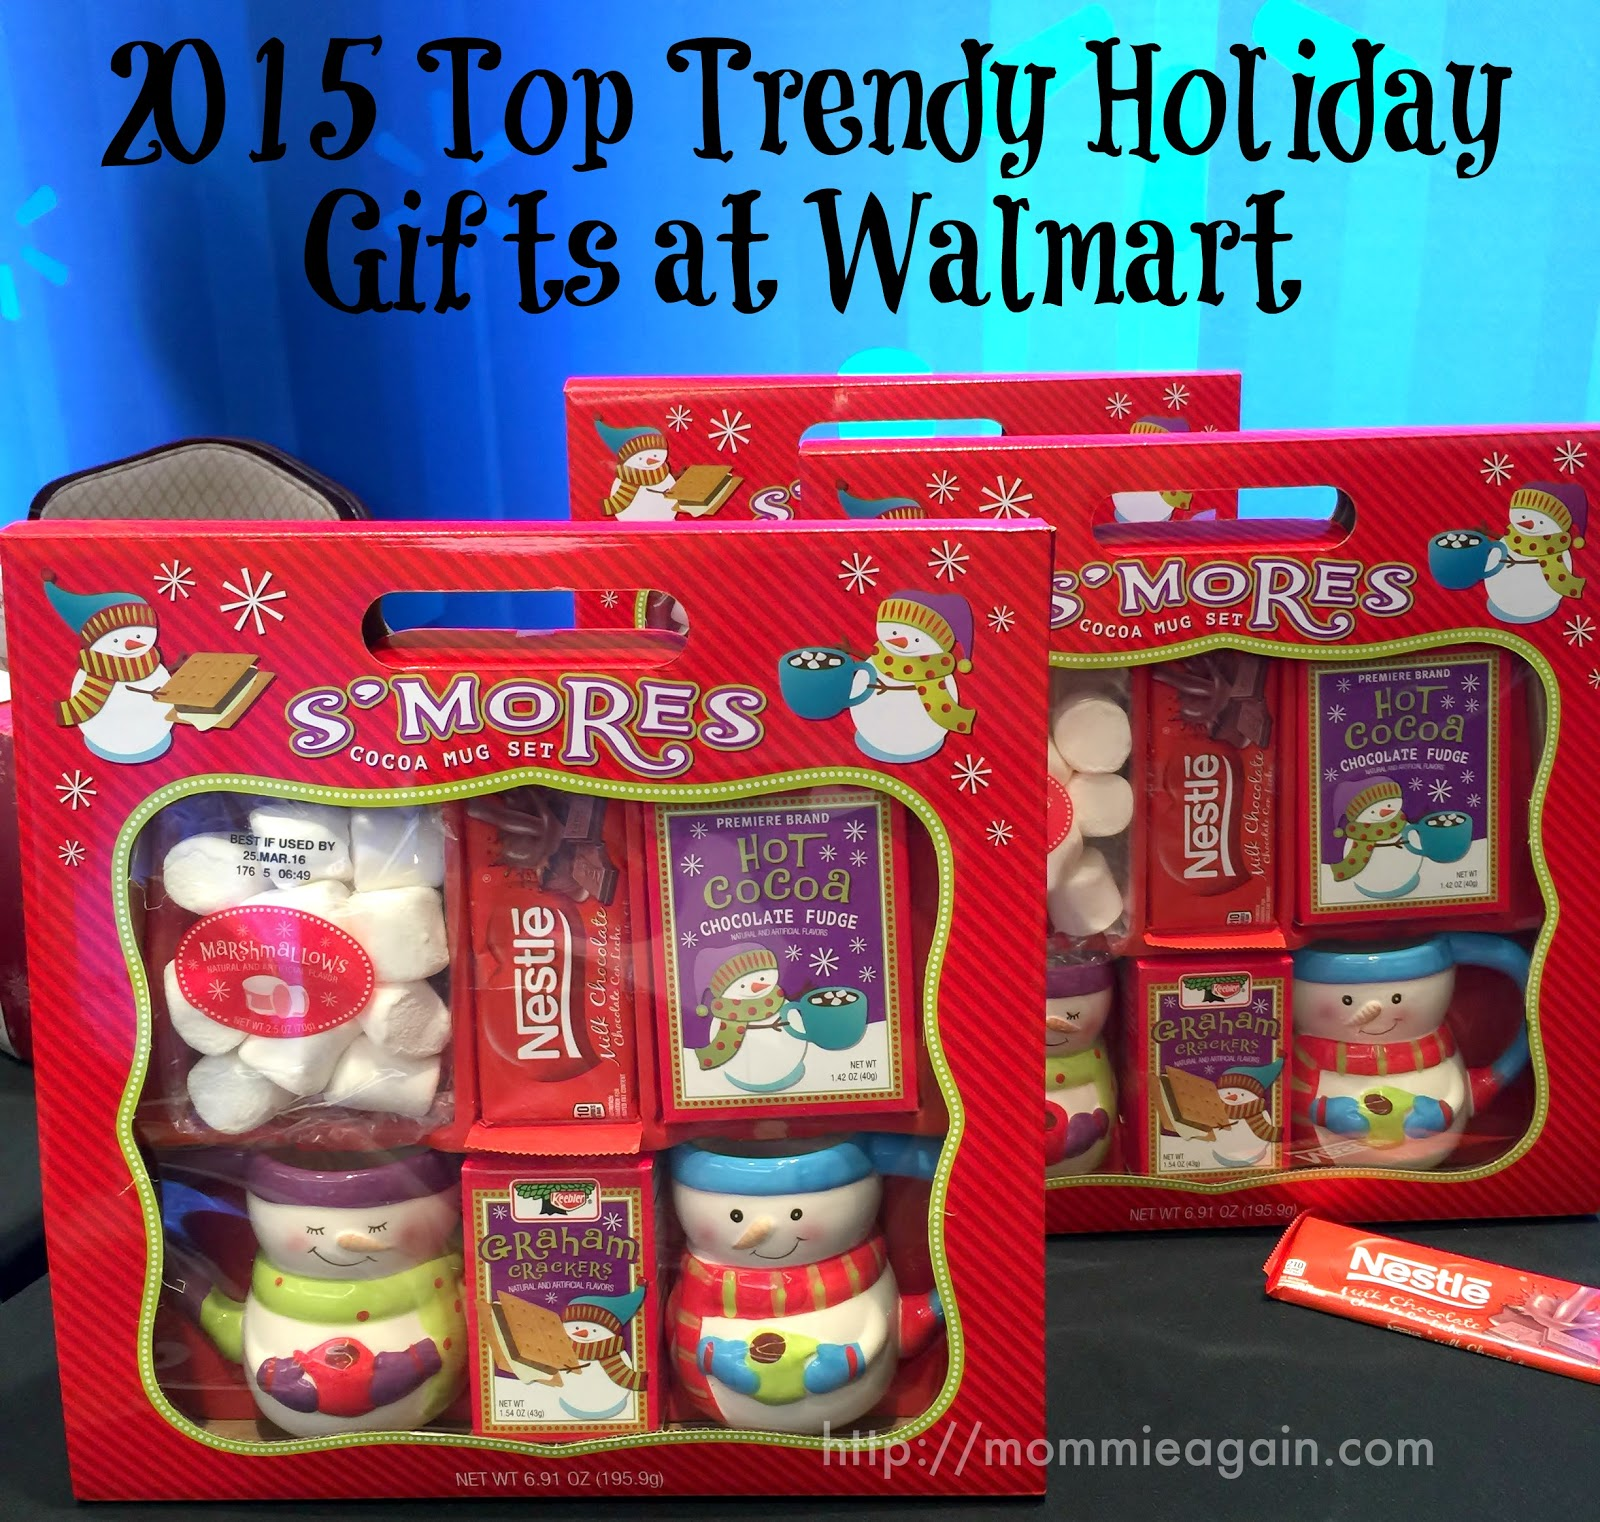 Top 20 Toys & Gifts for the Holiday Season at Walmart